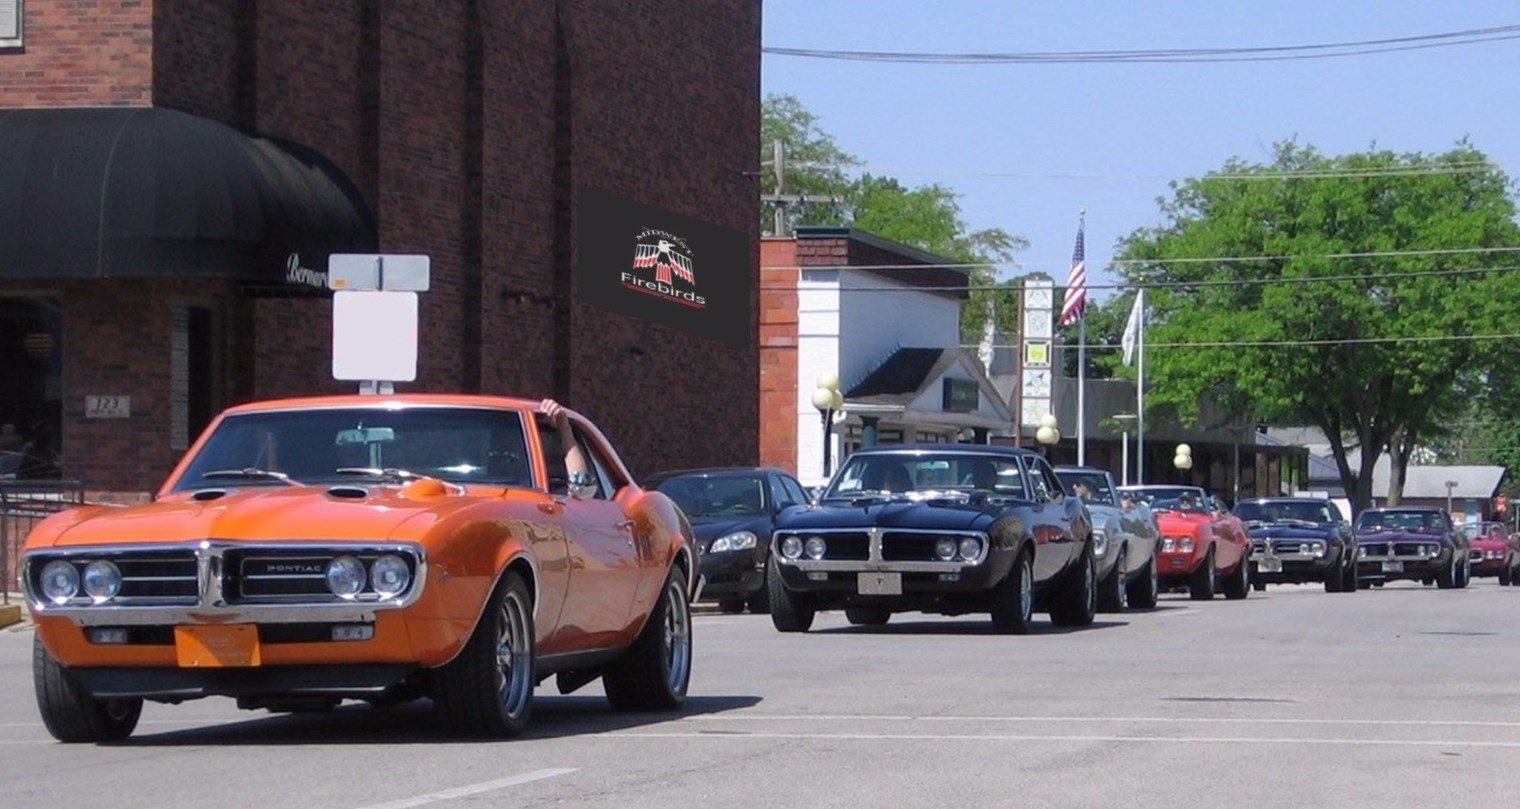 2016 Midwest Firebirds coming into Pontiac - with sign on   wall